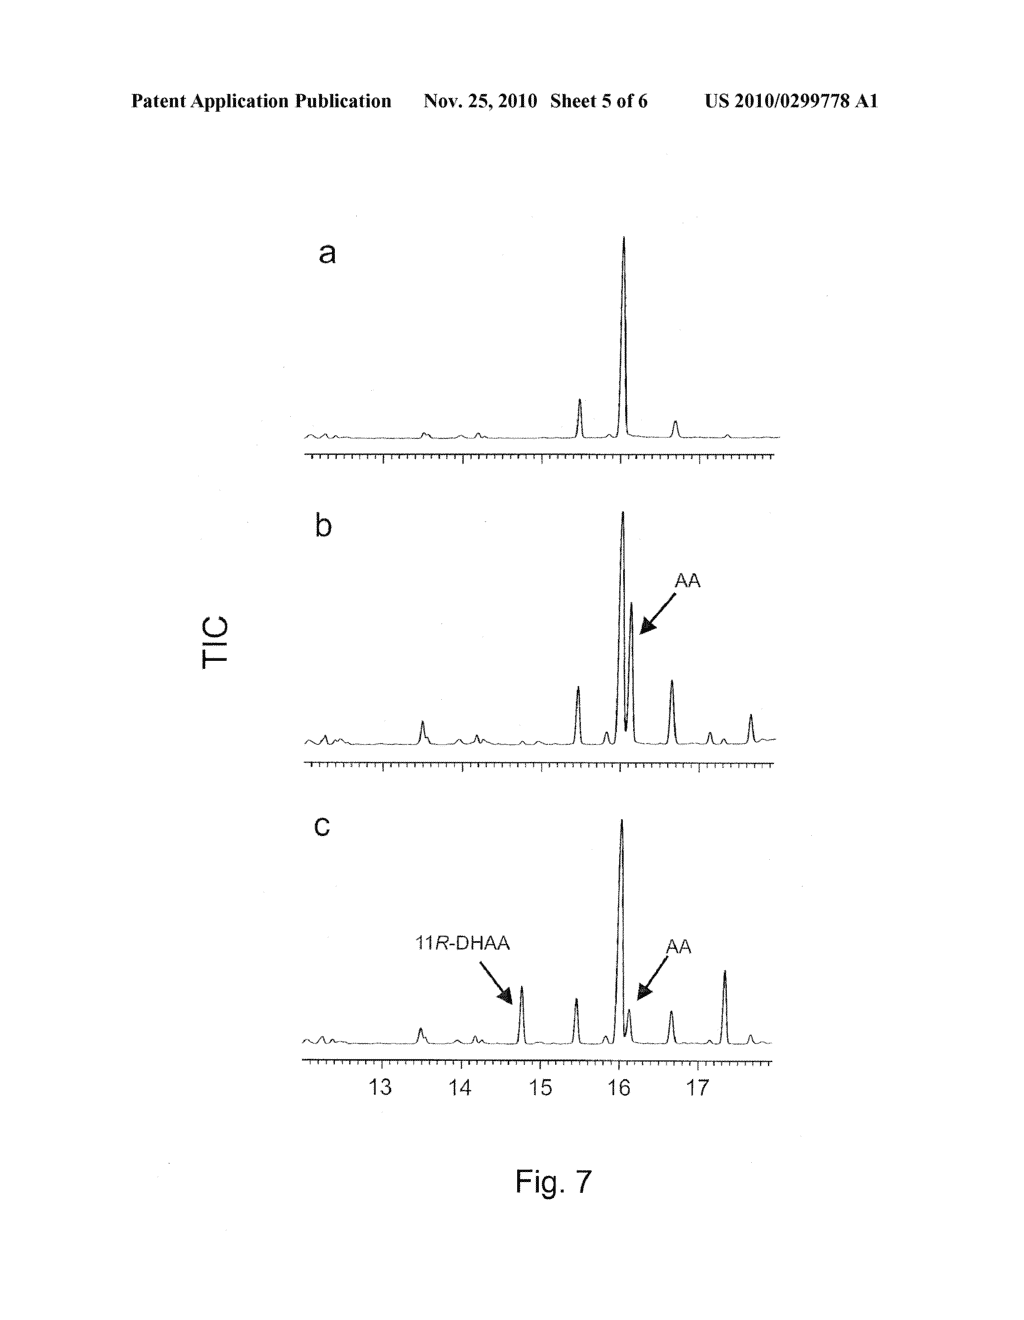 NUCLEOTIDE SEQUENCE ENCODING ARTEMISINIC ALDEHYDE DOUBLE BOND REDUCTASE, ARTEMISINIC ALDEHYDE DOUBLE BOND REDUCTASE AND USES THEREOF - diagram, schematic, and image 06